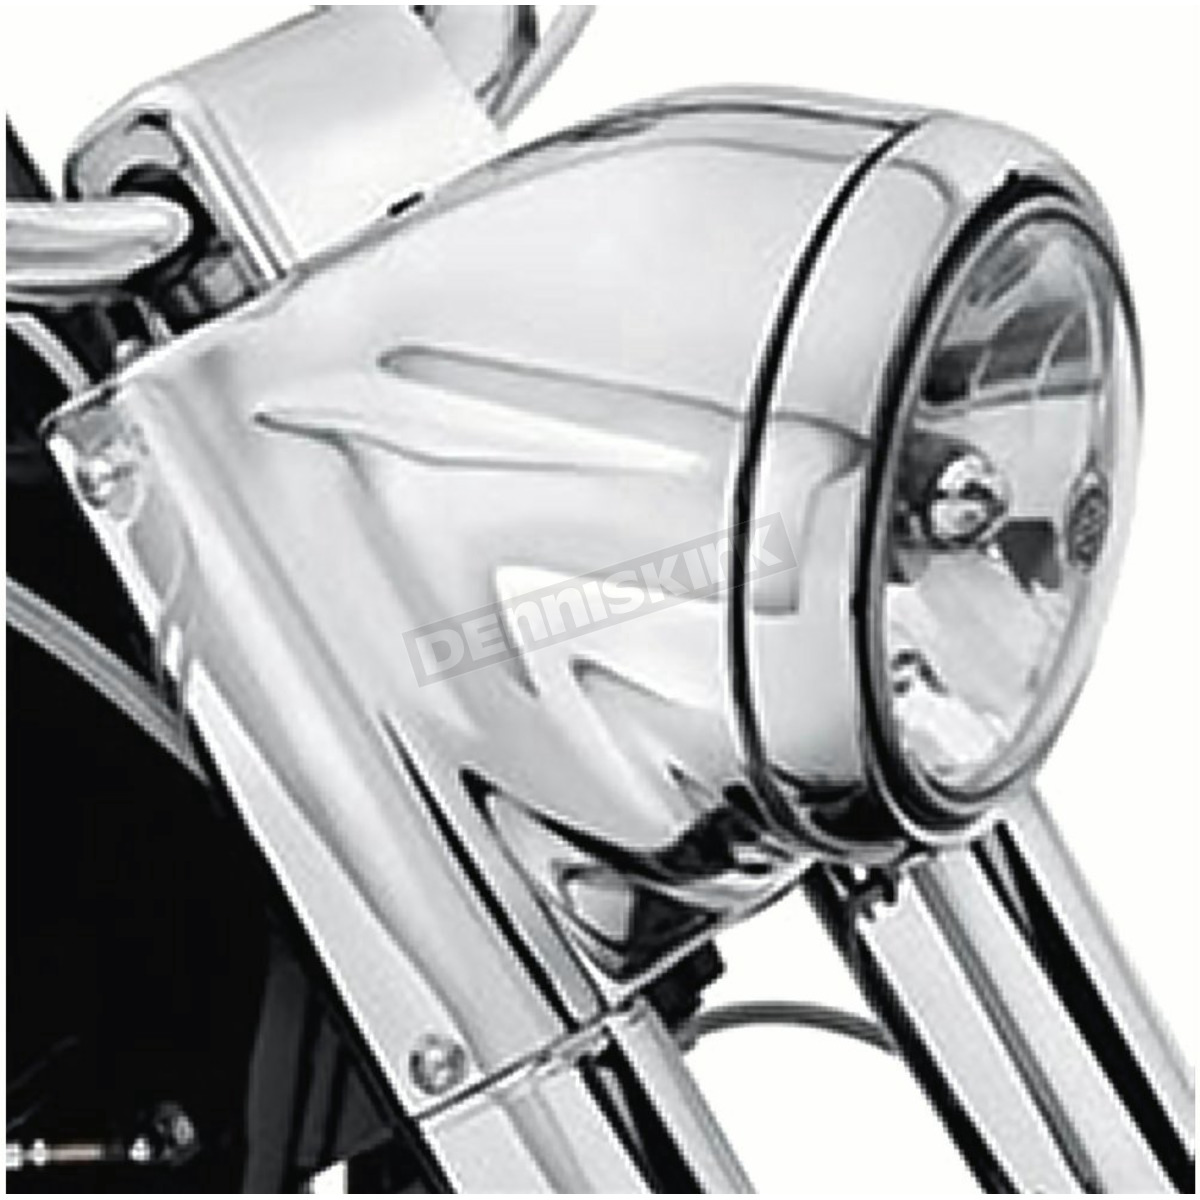 harley davidson inc motorcycle industry Motorcycle industry shifting gears in canada to cope with canada's motorcycle industry is facing headwinds from the low hog-n harley-davidson inc latest.